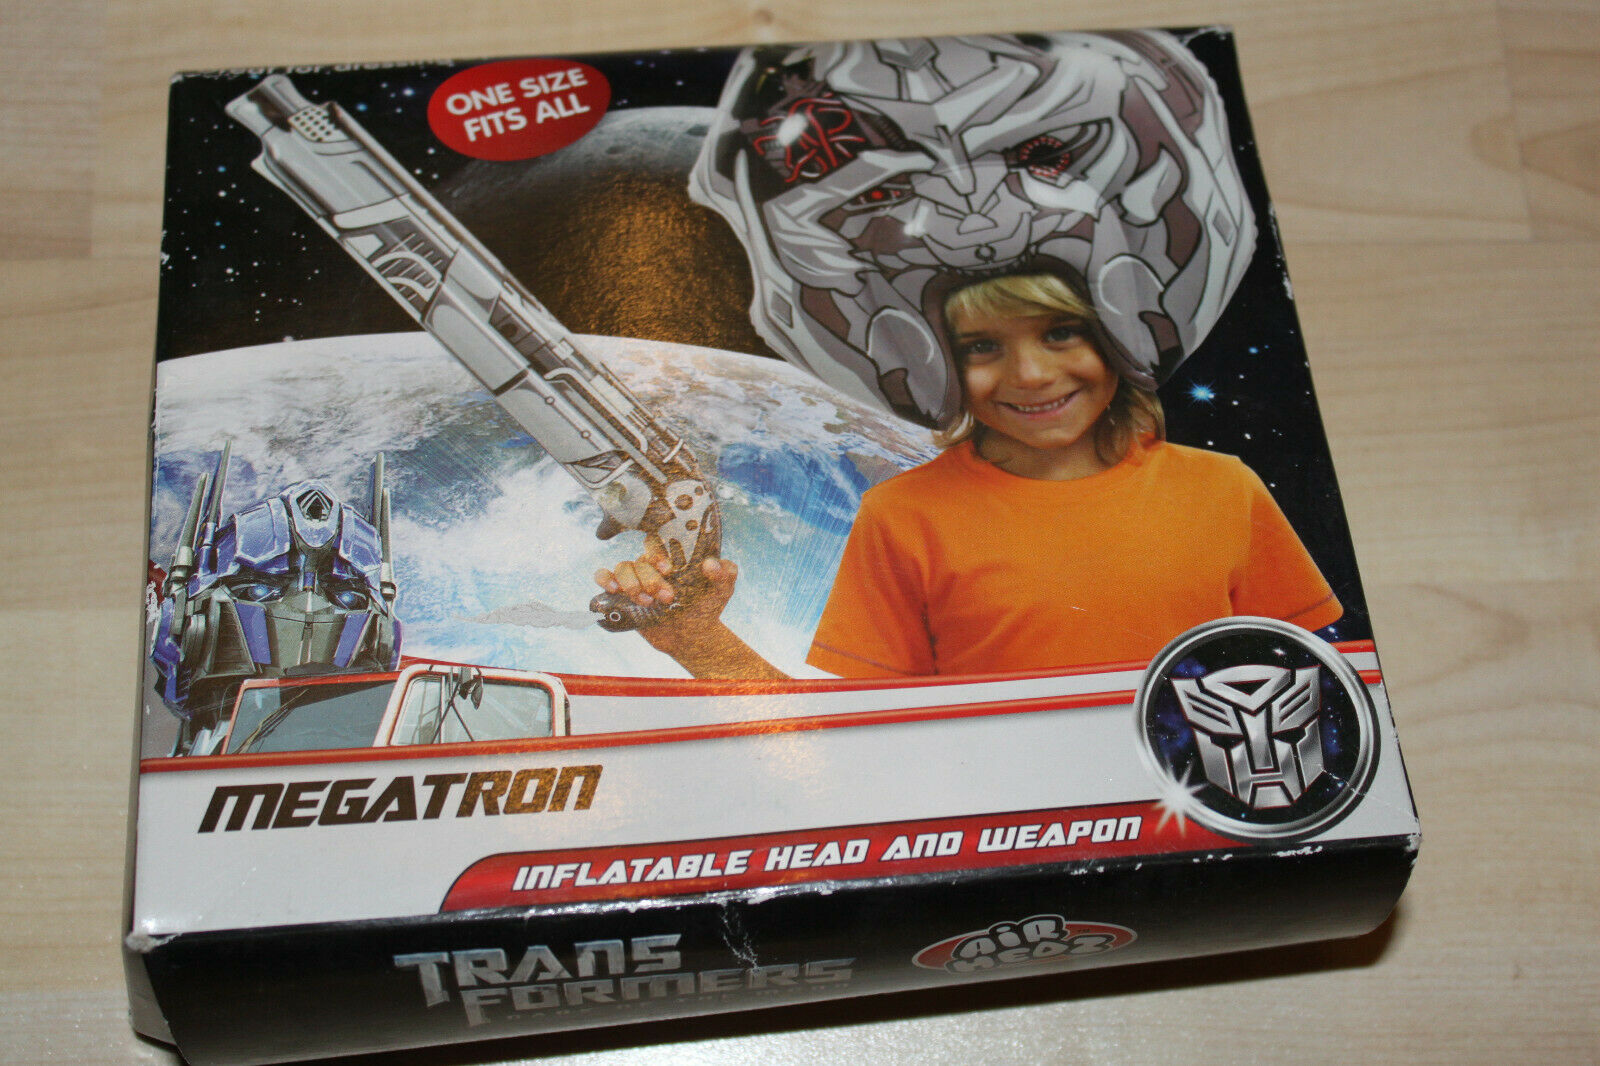 Extremely Rare Airheadz Transformers megatron inflatable head and weapon